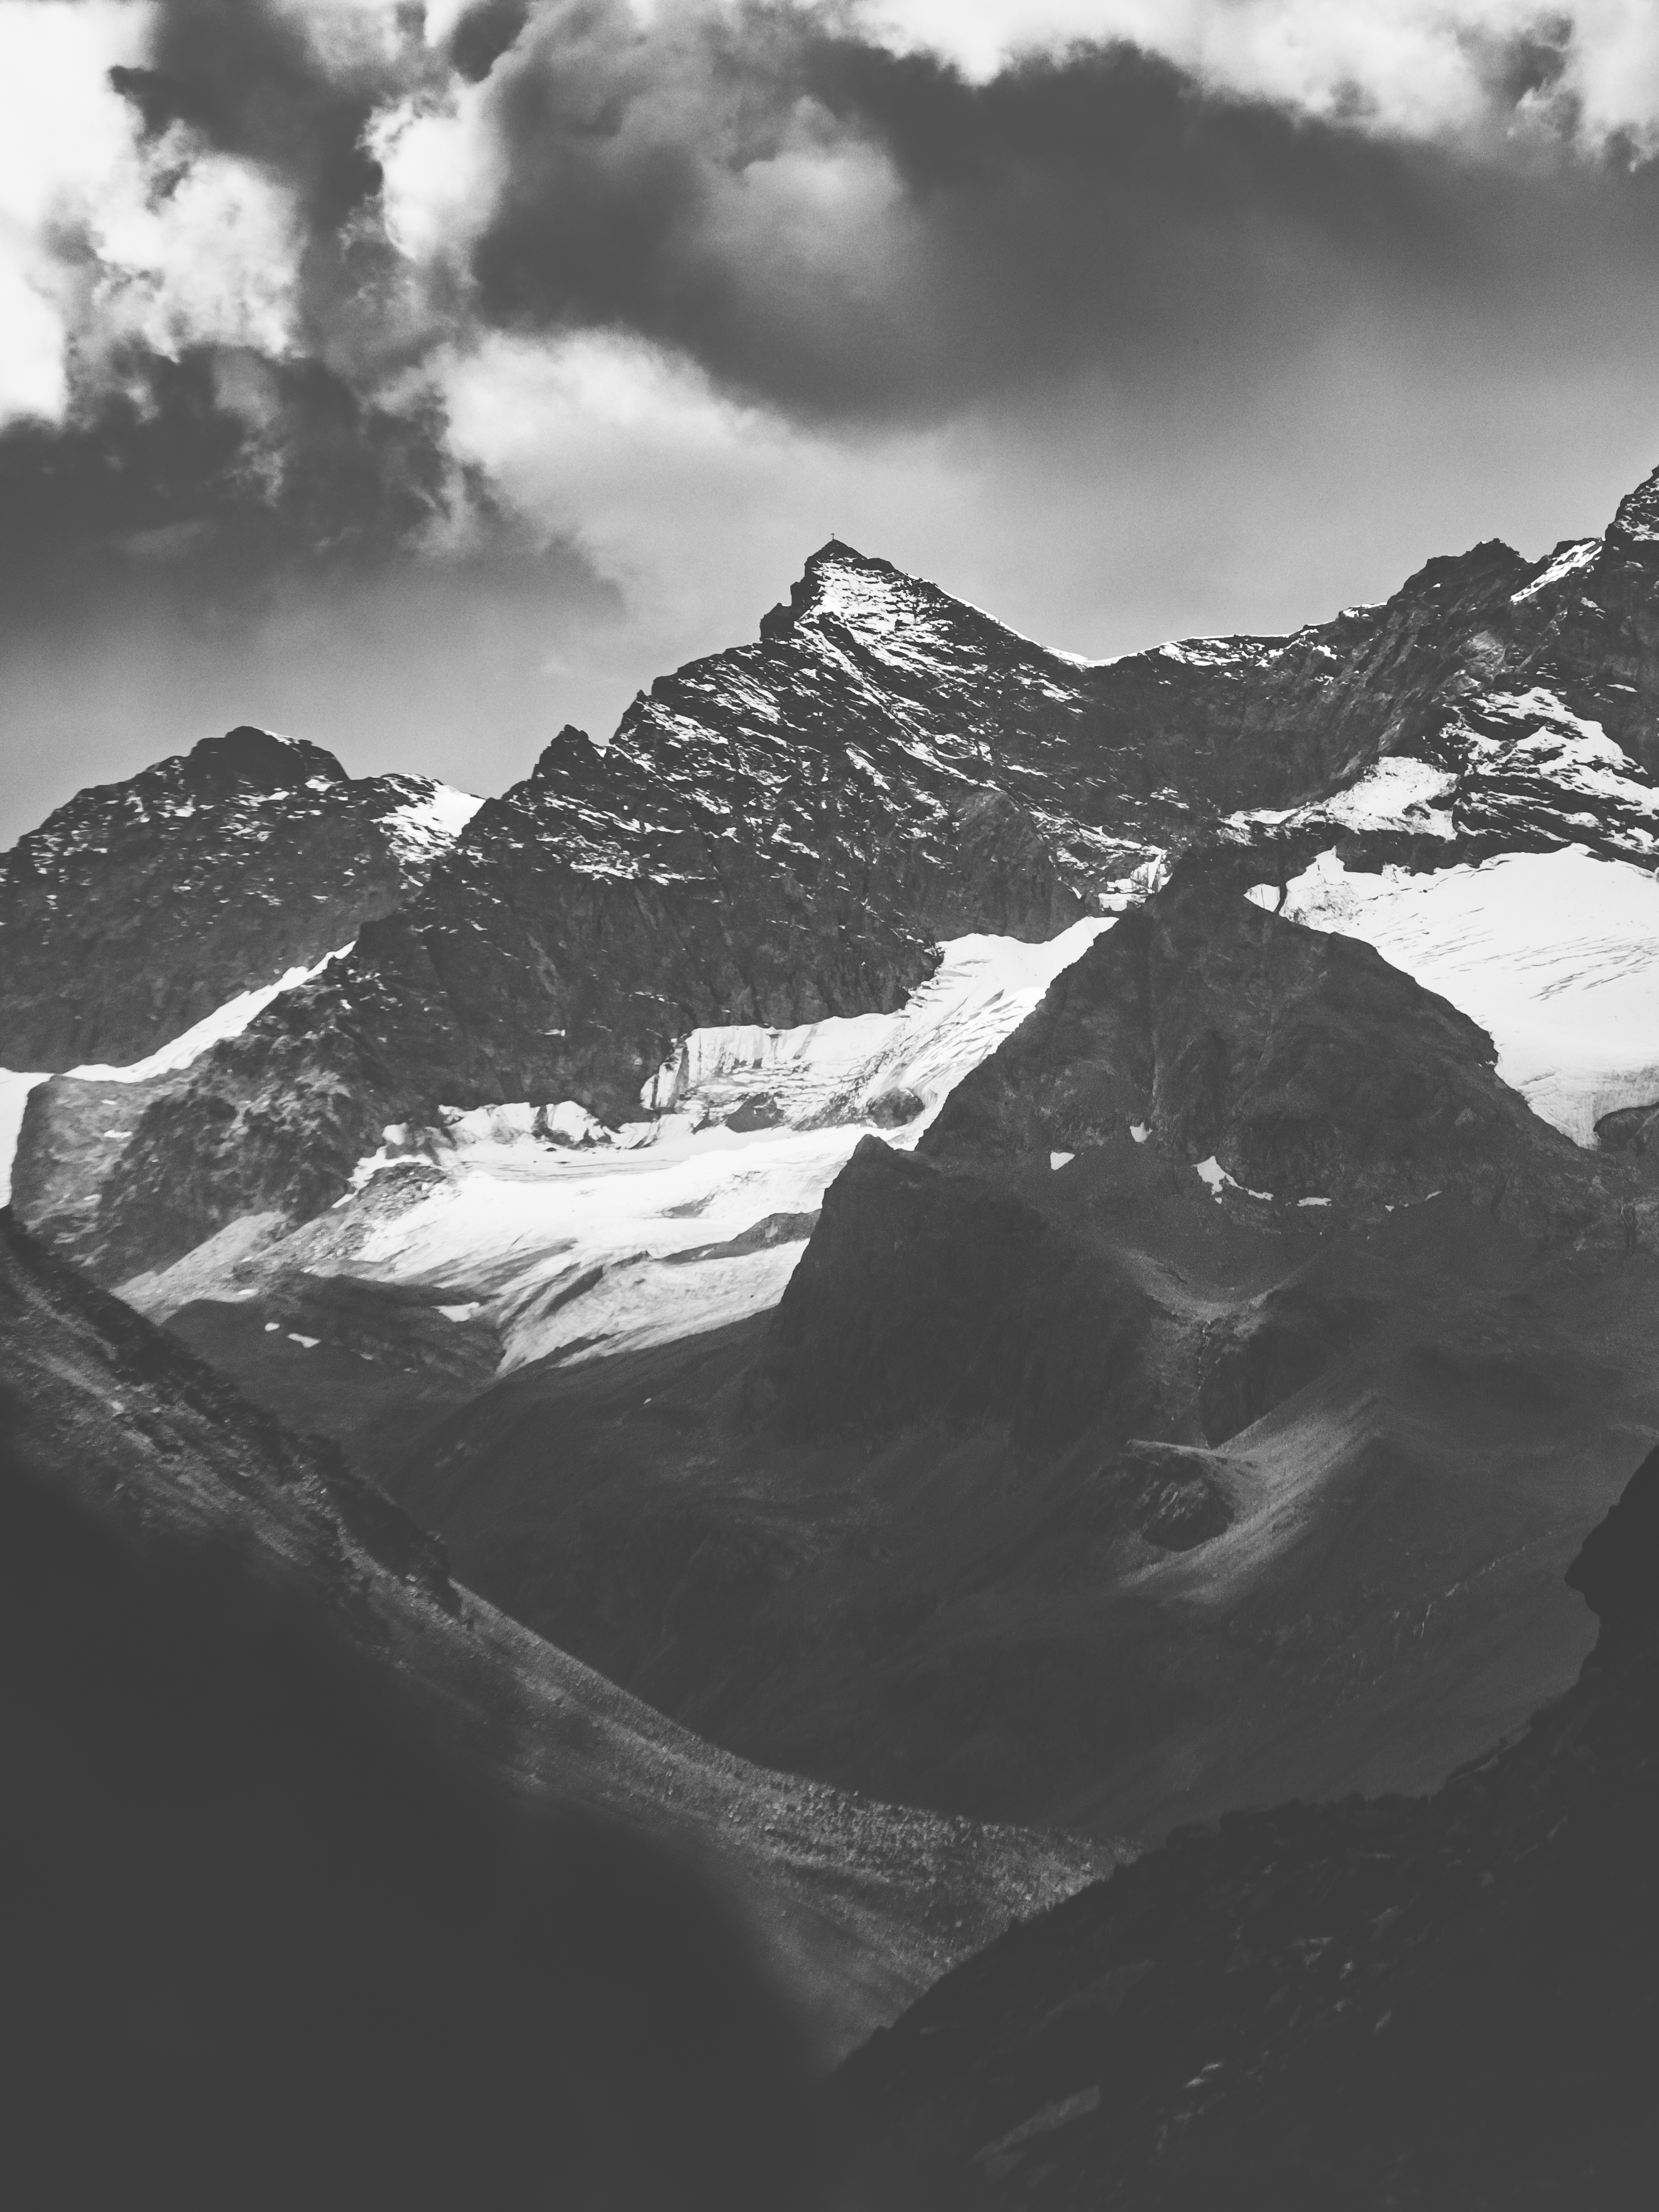 87669 download wallpaper Nature, Tops, Vertex, Bw, Chb, Snow, Snow Covered, Snowbound, Rocks, Mountains screensavers and pictures for free